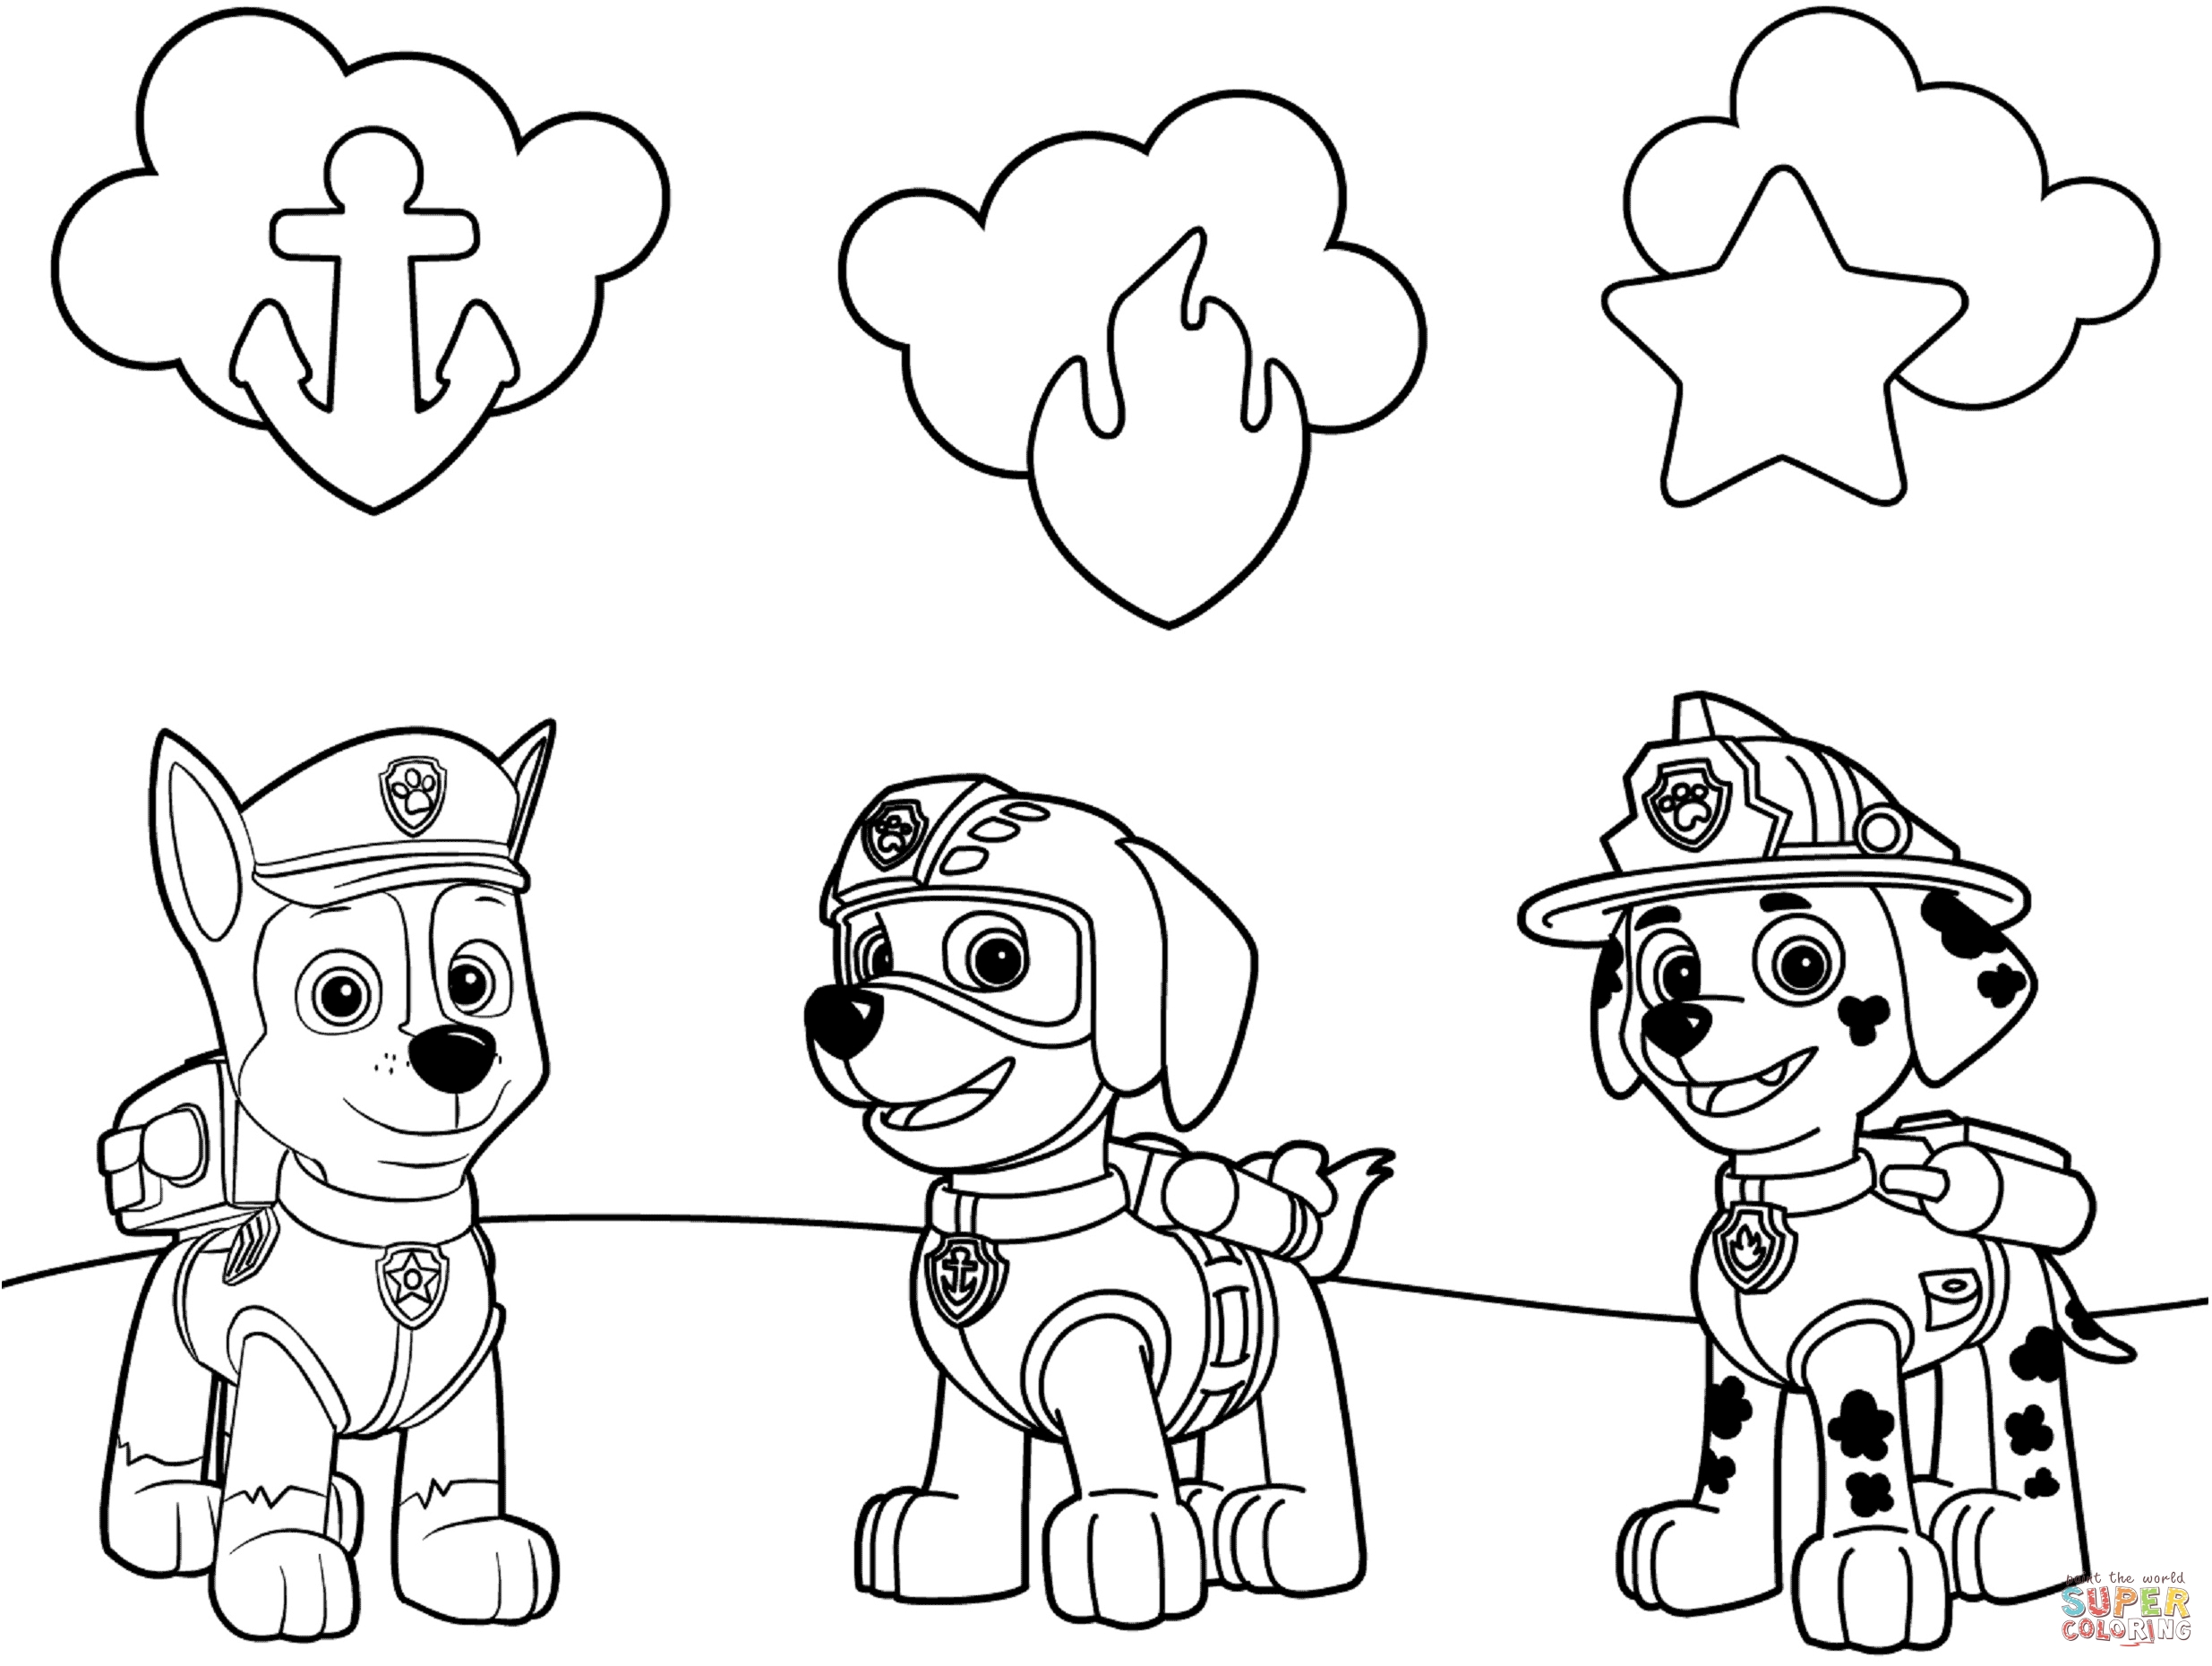 free printable paw patrol coloring pages - paw patrol badges